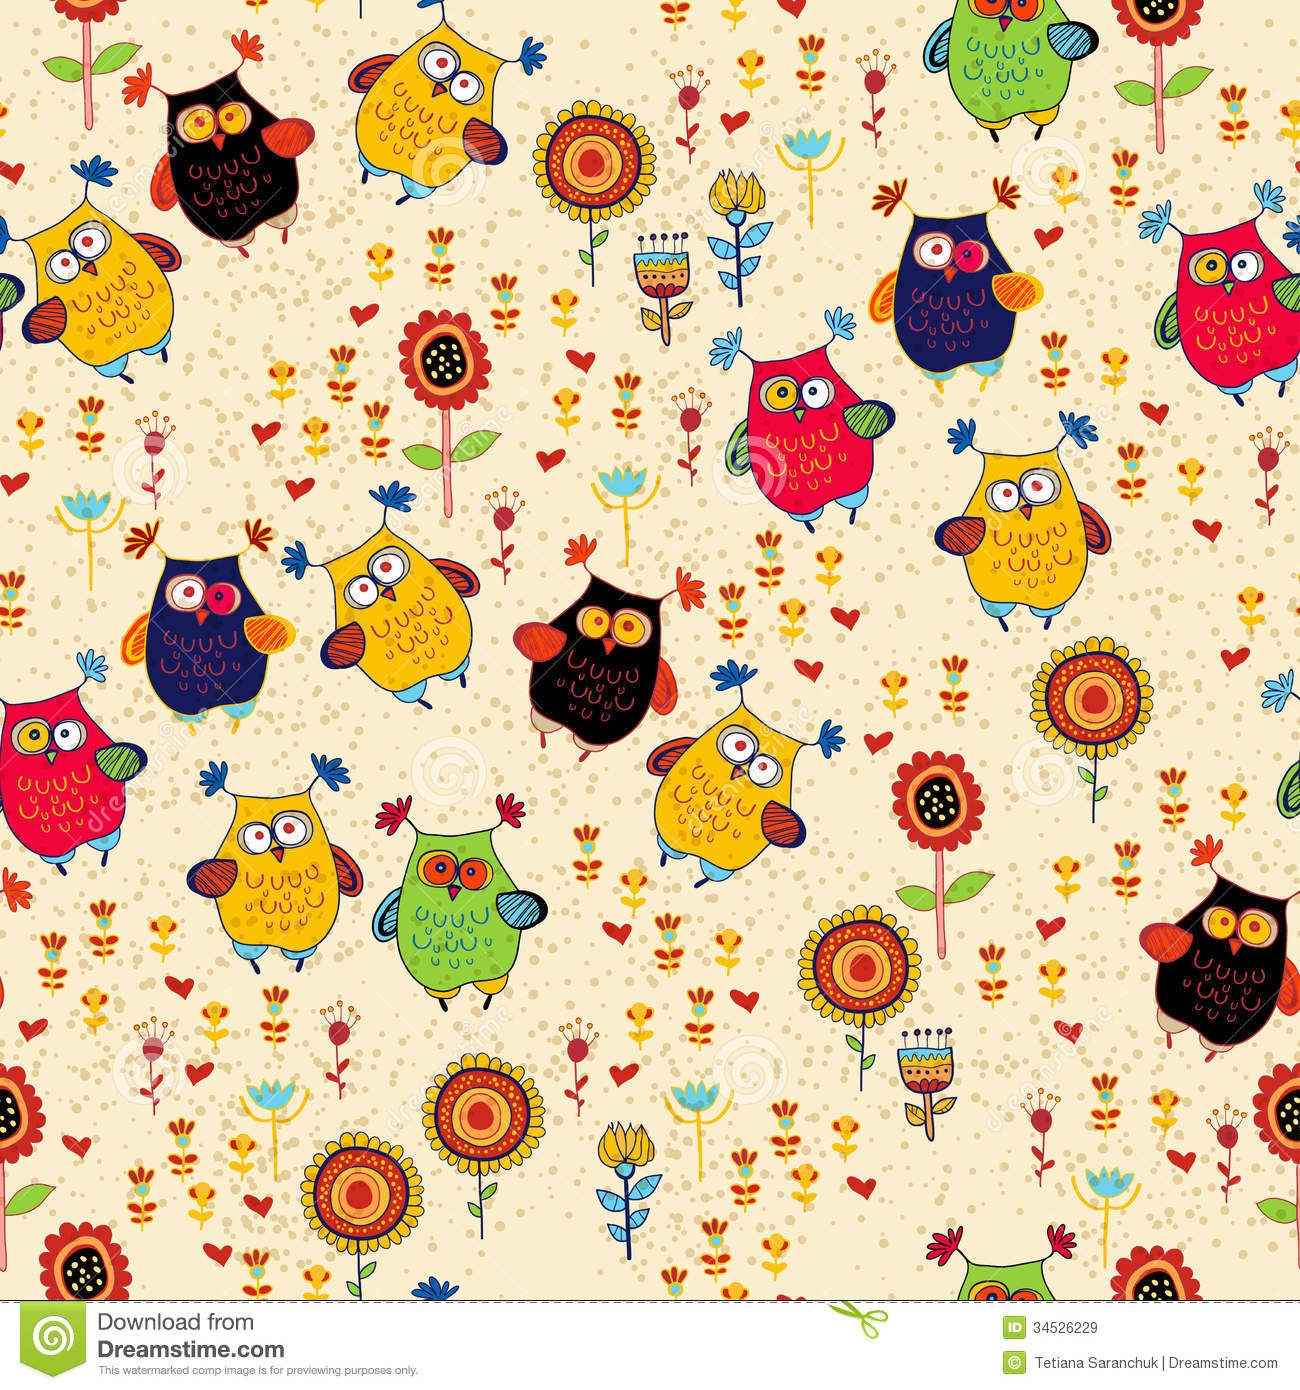 Hello Kitty Fall Wallpaper Floral Seamless Pattern With Owl And Bird Stock Vector